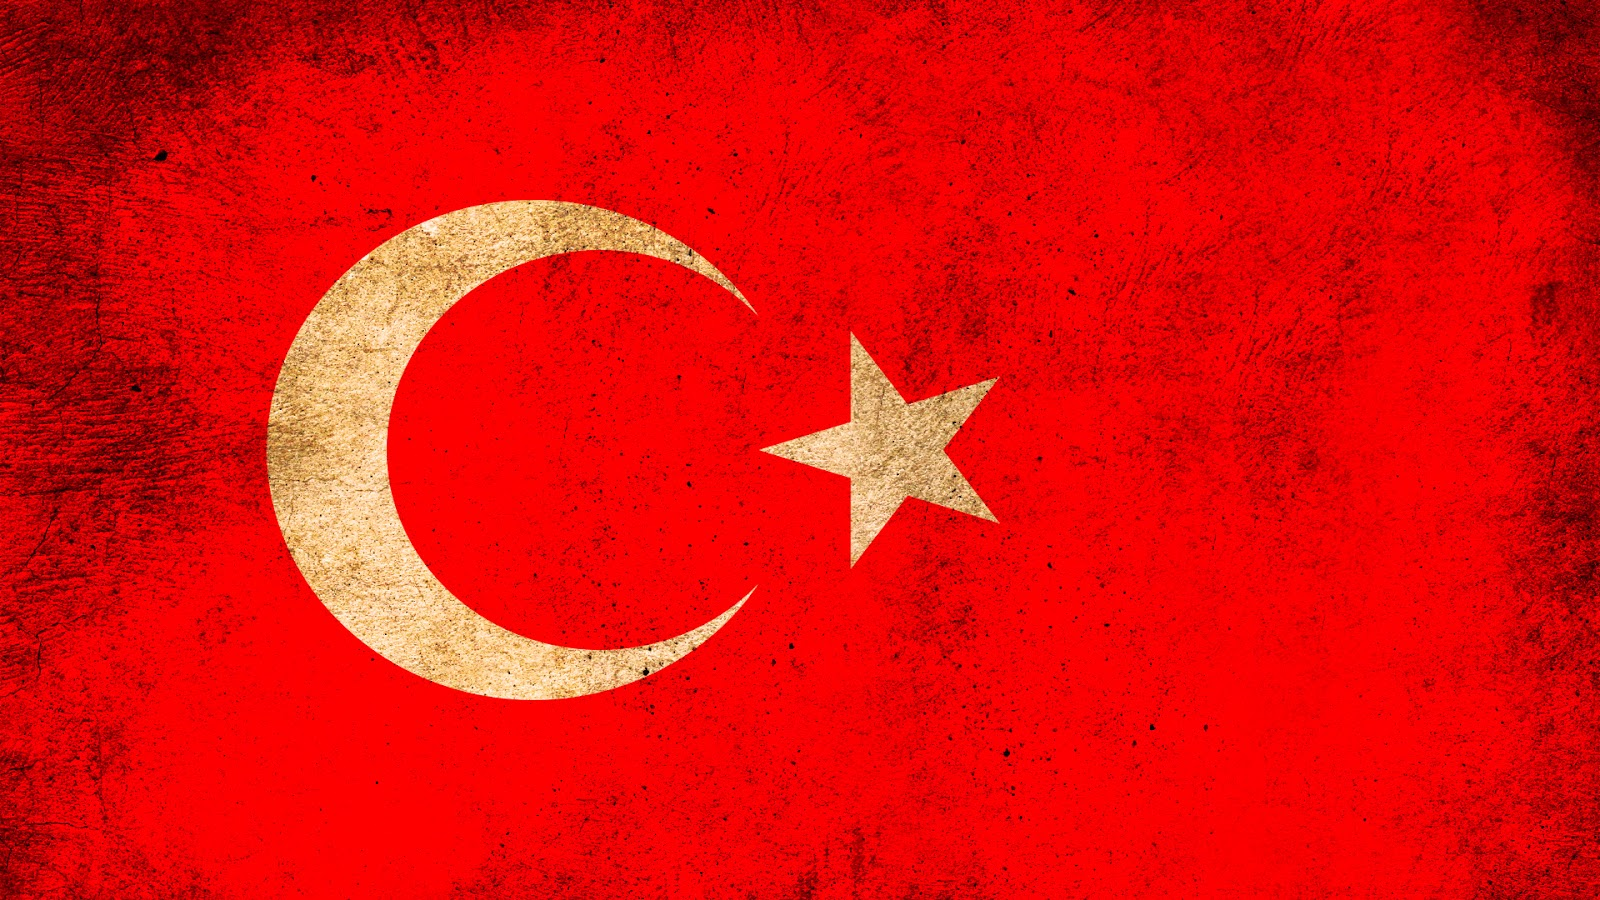 Turkish Design Wallpaper : Turkish flag wallpaper design